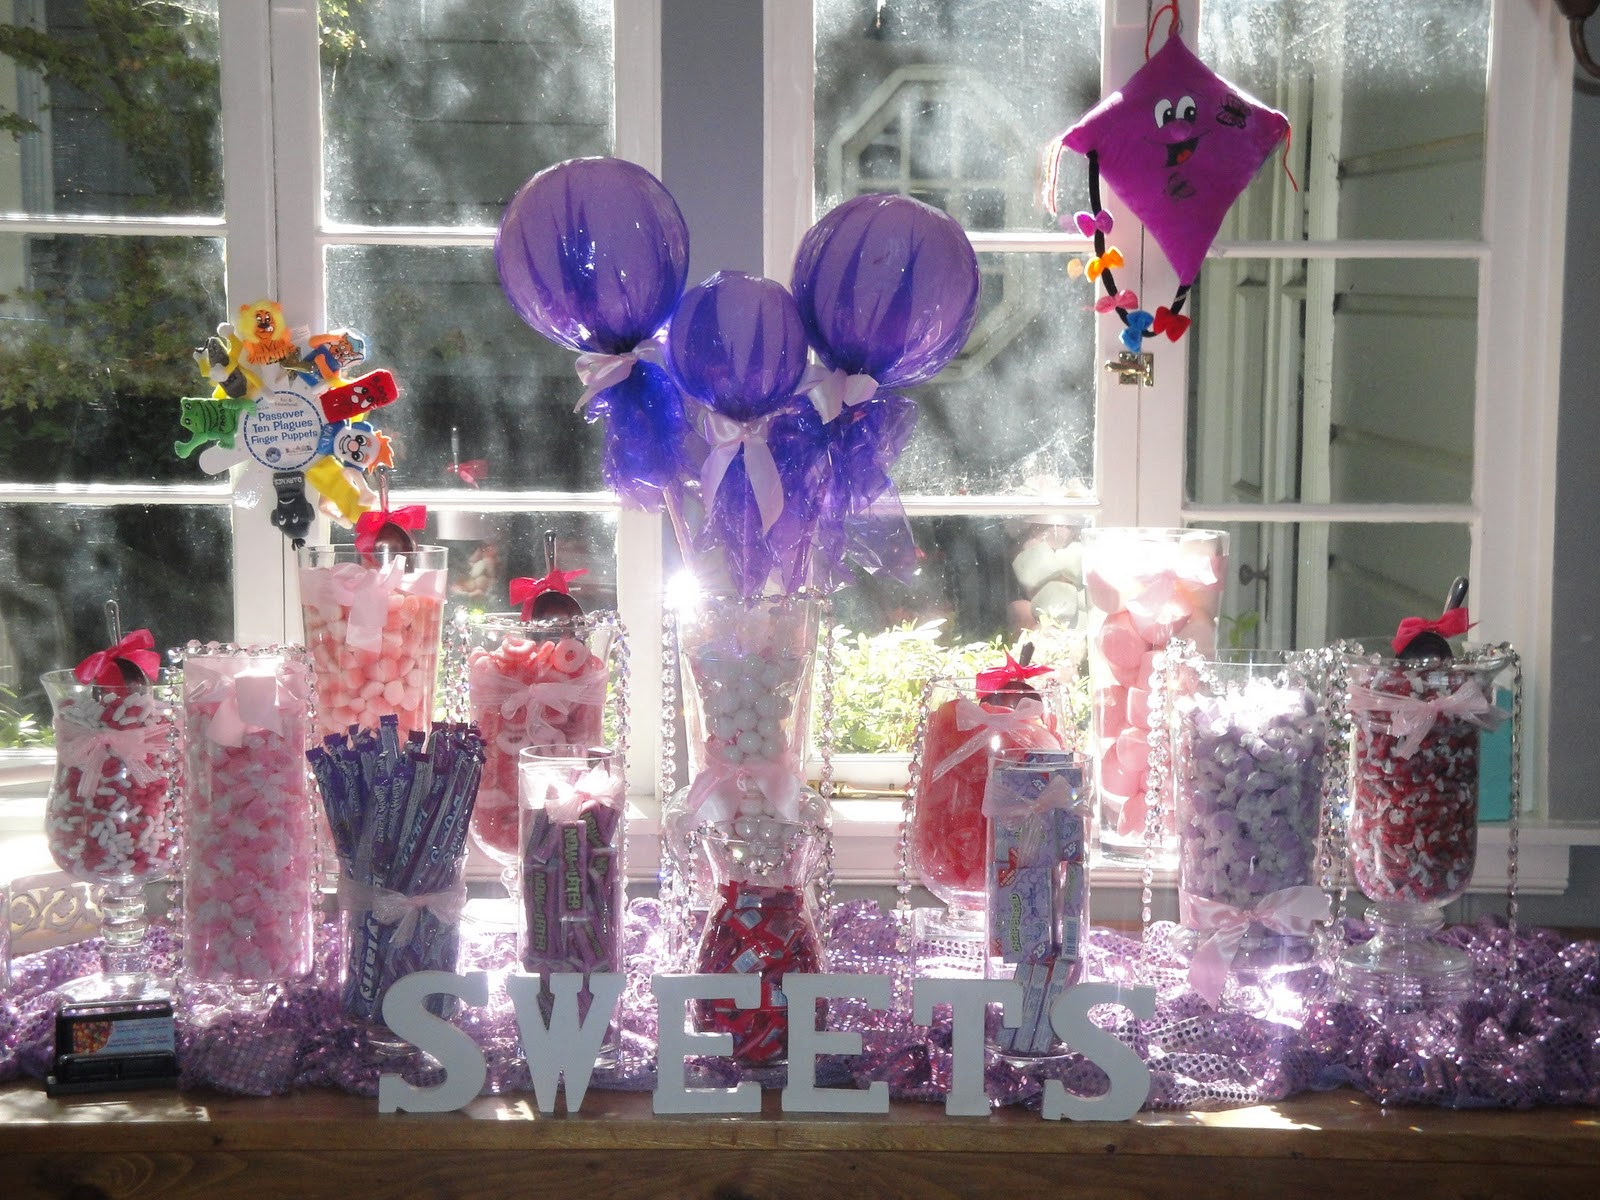 Event Industry Bl: Morgans Surprise Sweet 16 Birthday Party! A